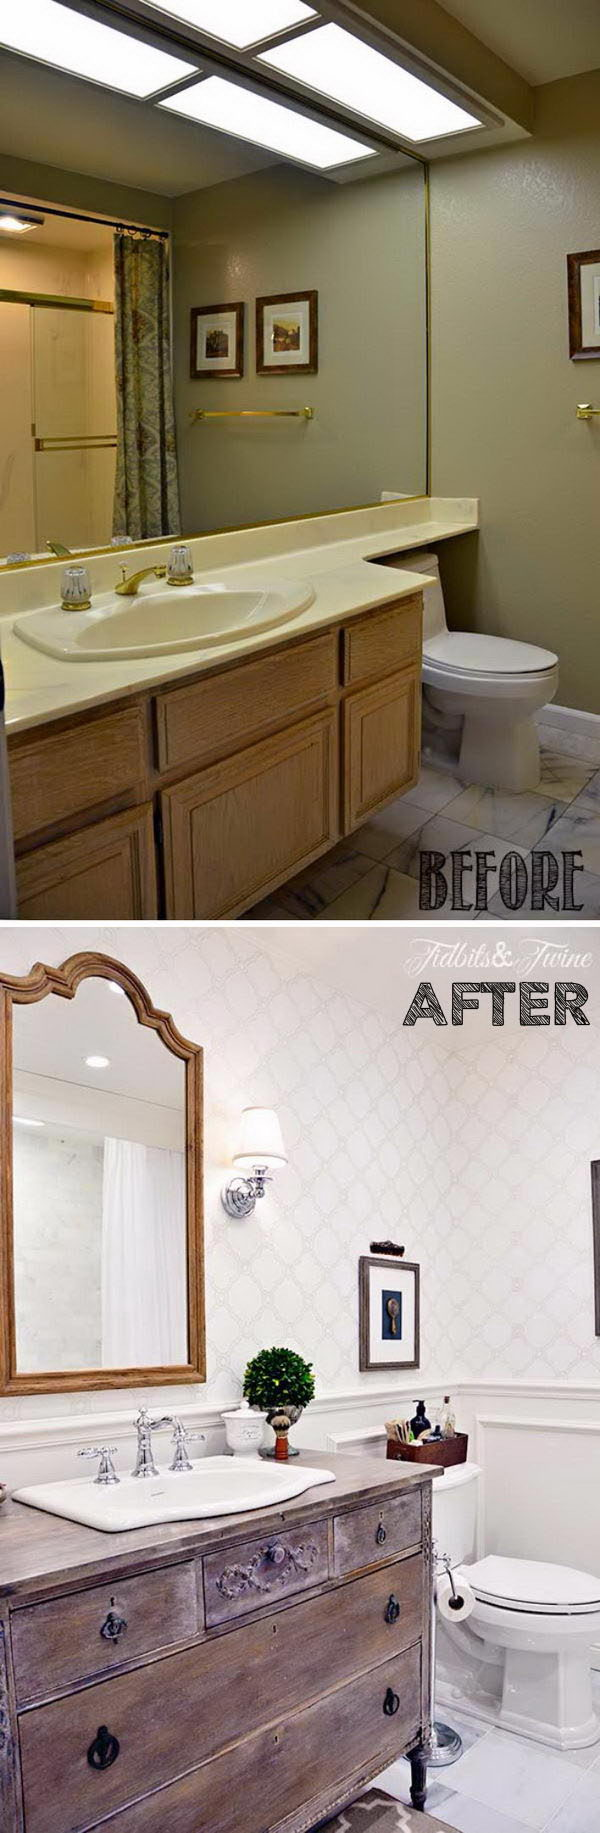 50 Gorgeous Bathroom Makeovers With Before And After Photos 2017